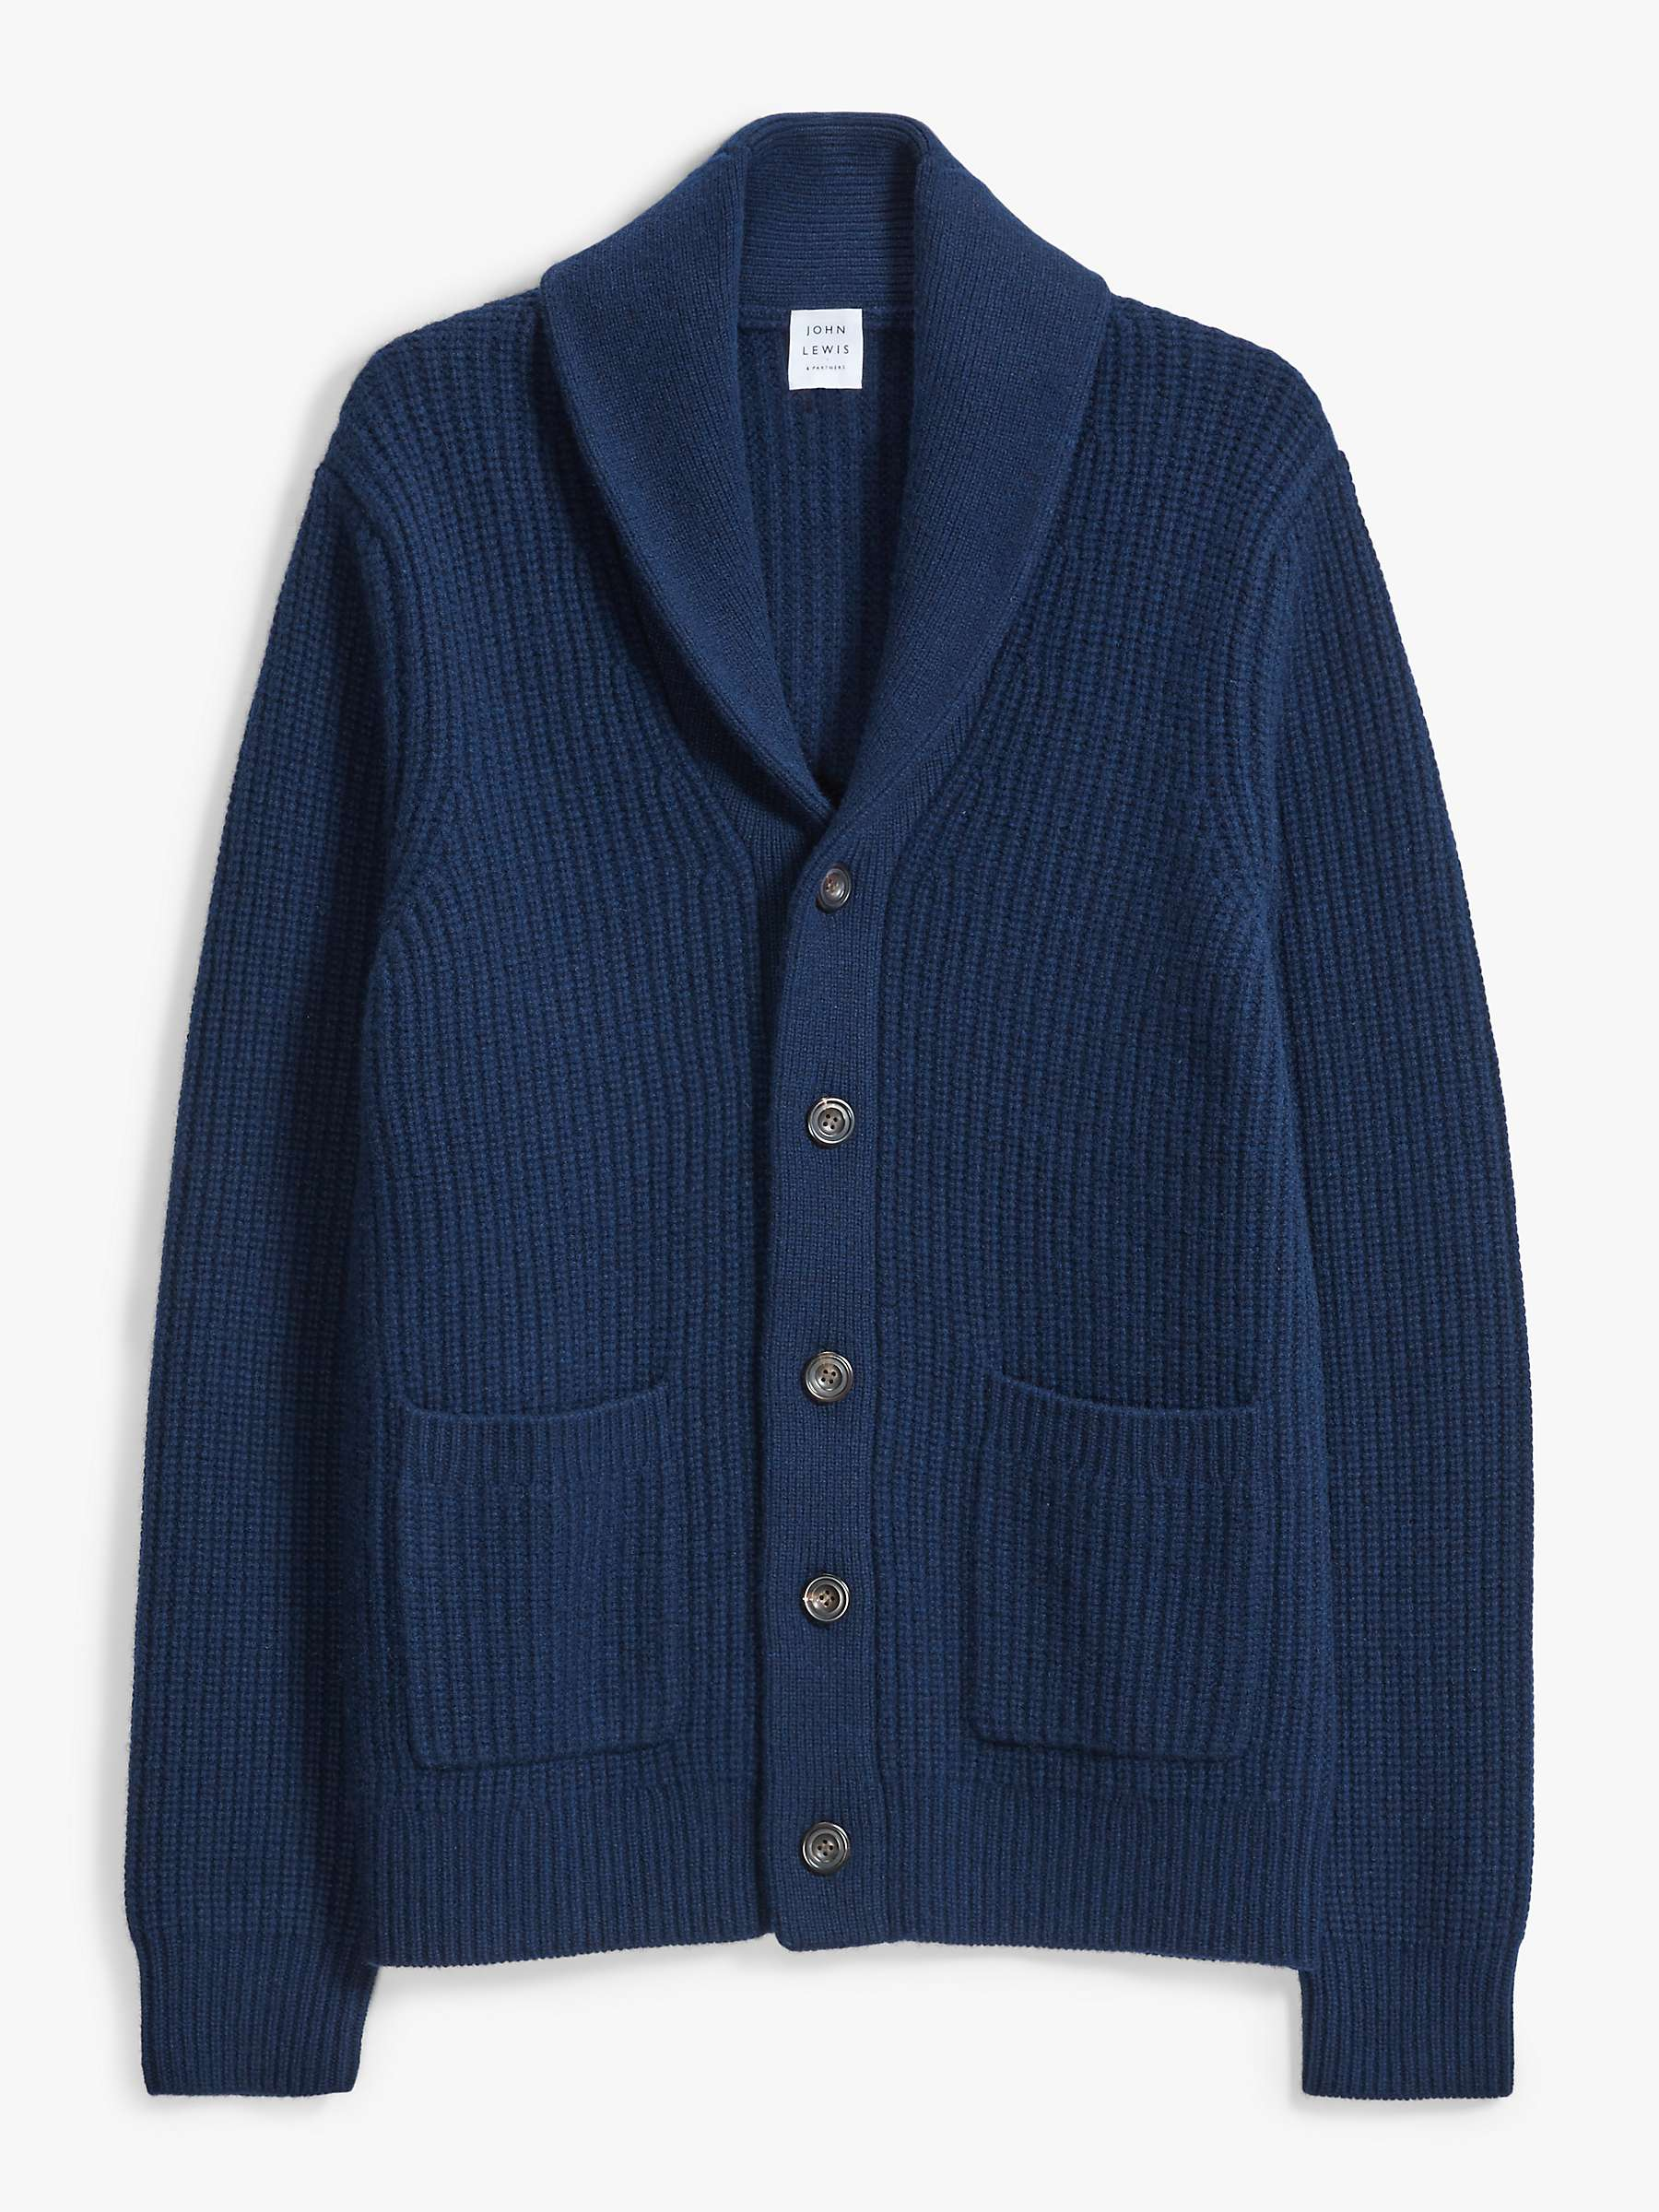 John Lewis & Partners Wool Cashmere Shawl Collar Cardigan, Navy